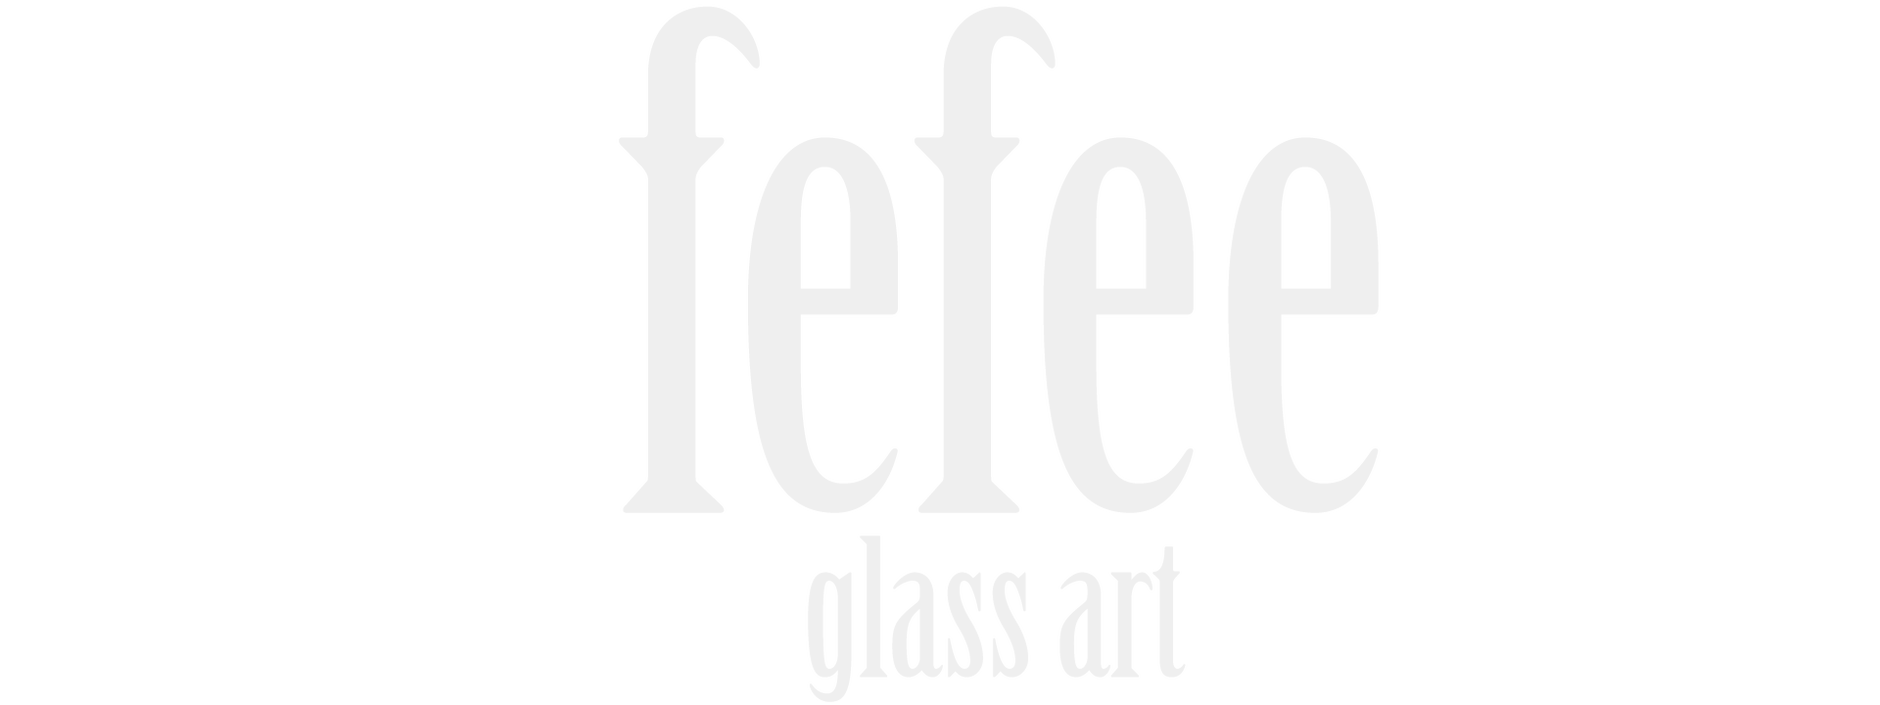 fefee glass art